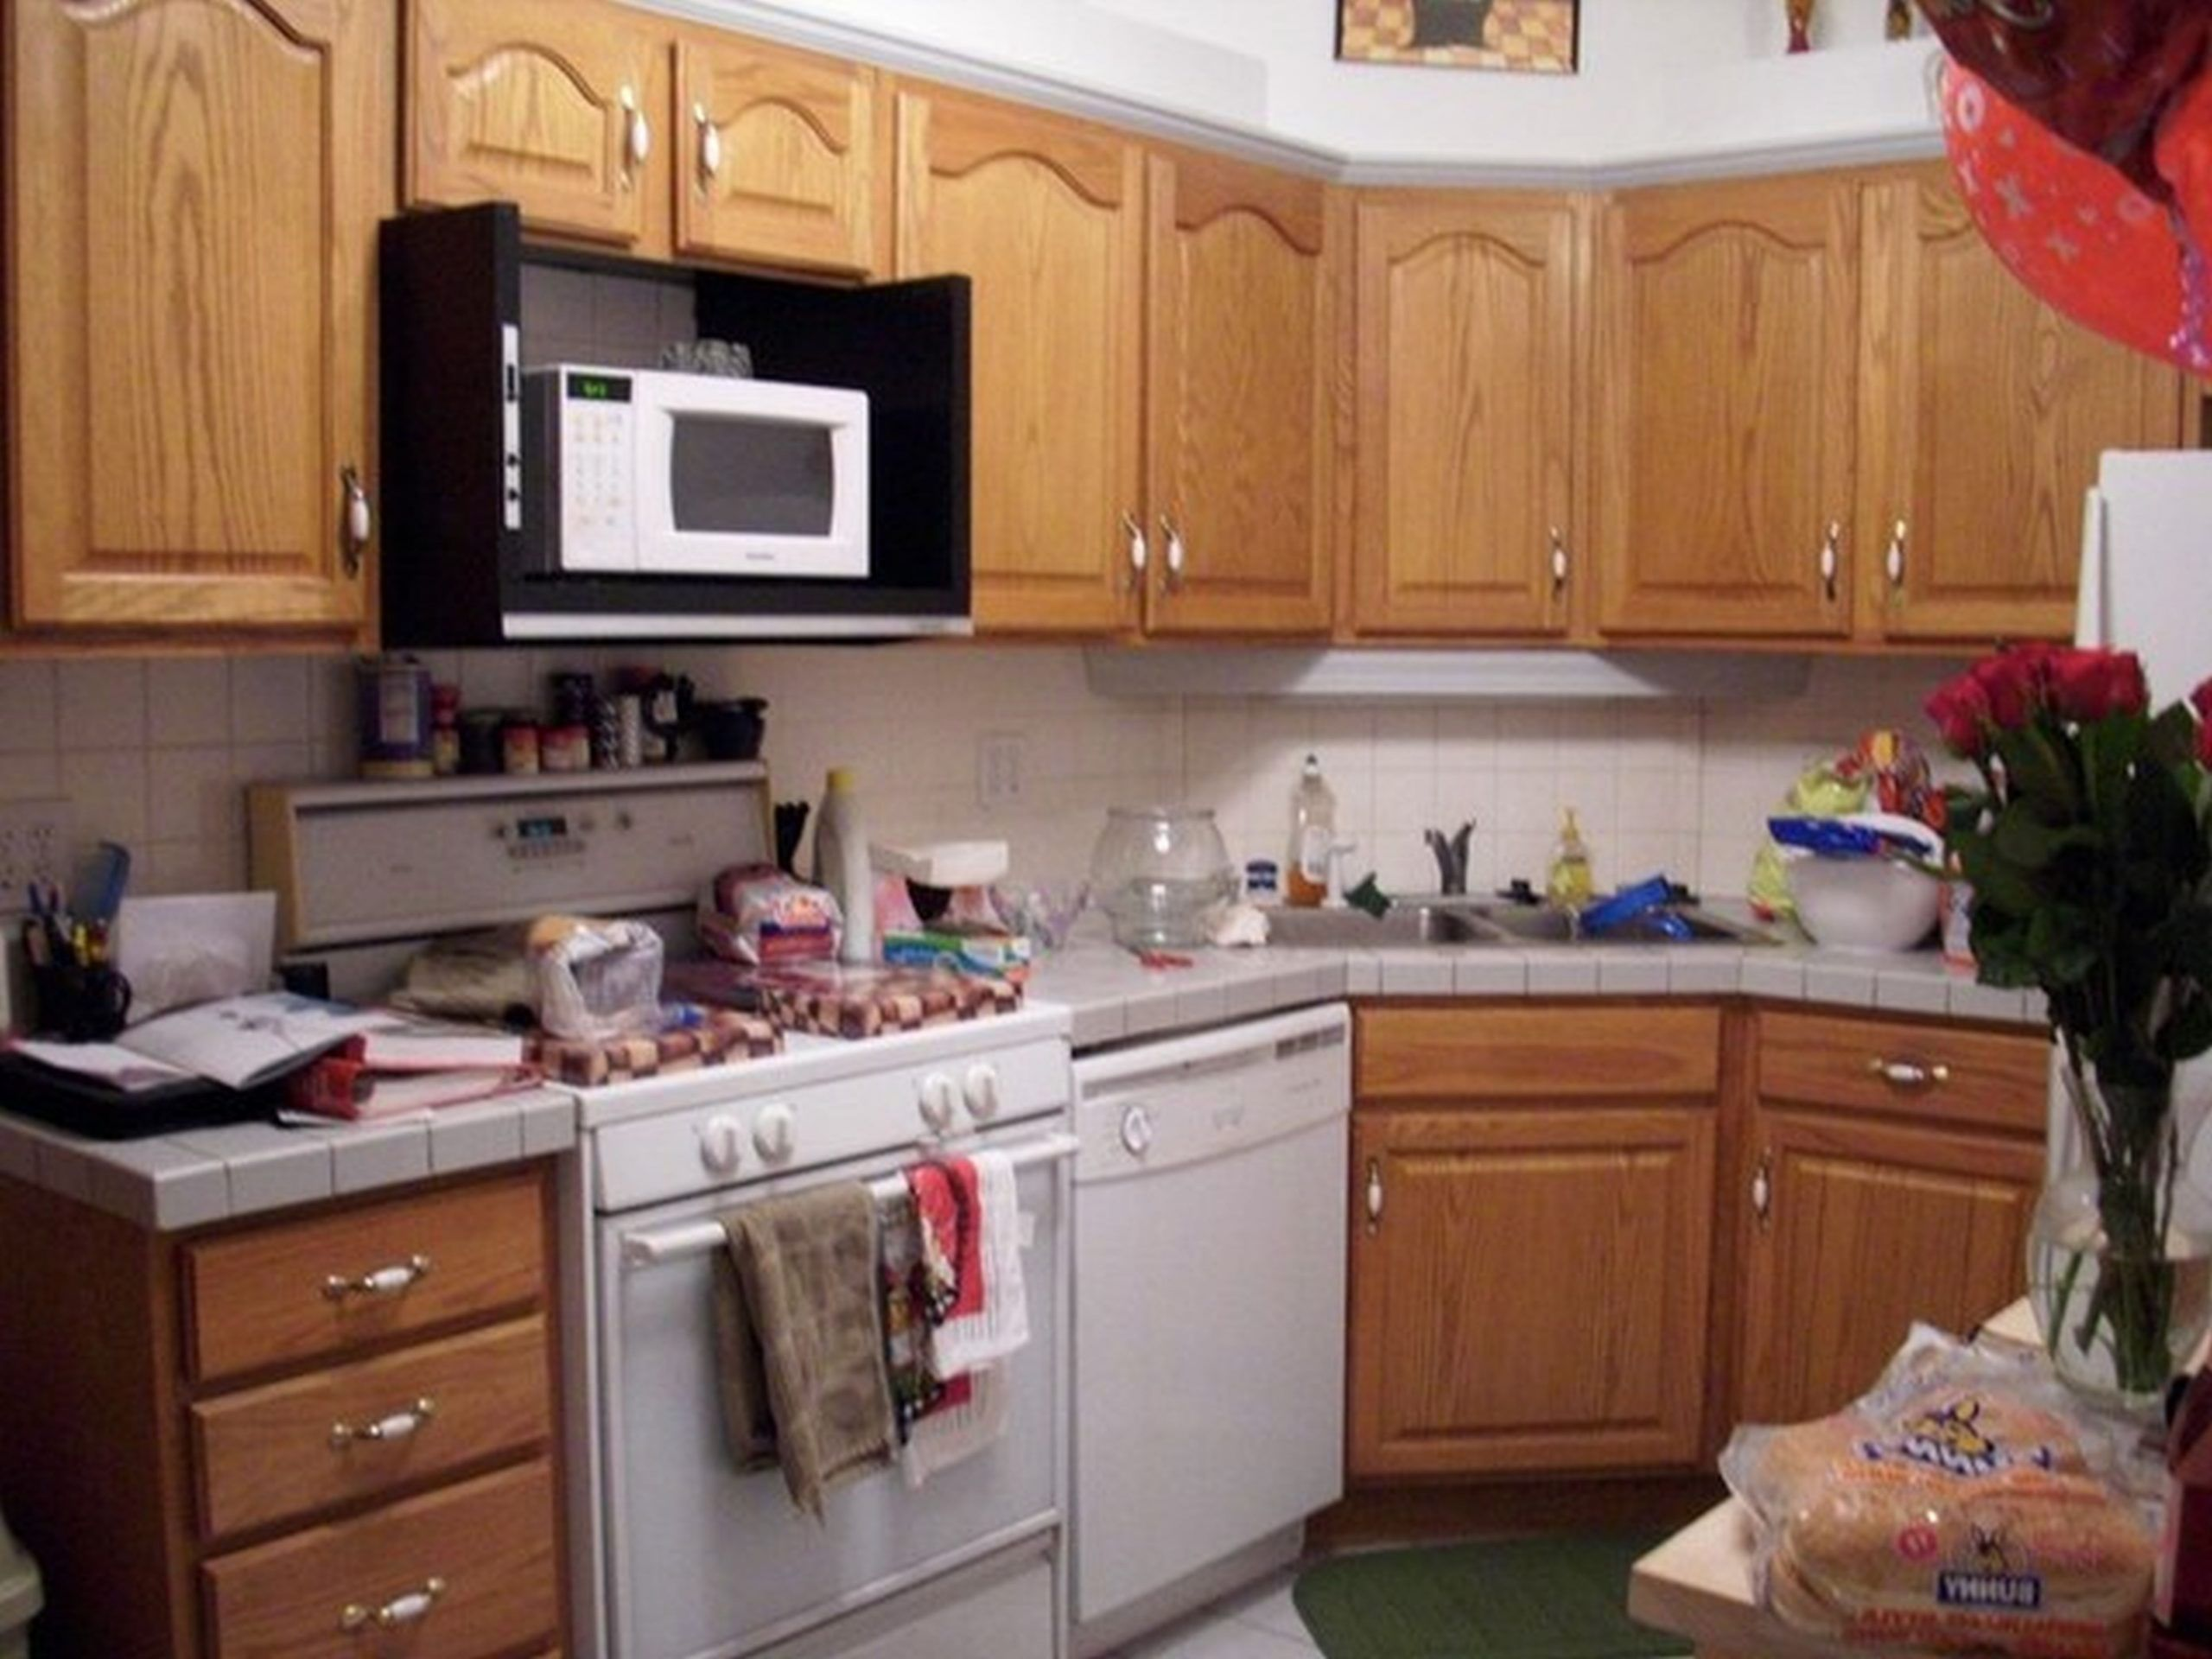 Cabinet Hardware Albany Ny Chrome Is A Silver Finish That Is Often Stacked Albany Kitchen Cabinet Makers Kitchen Cabinet Hardware Cheap Kitchen Cabinets